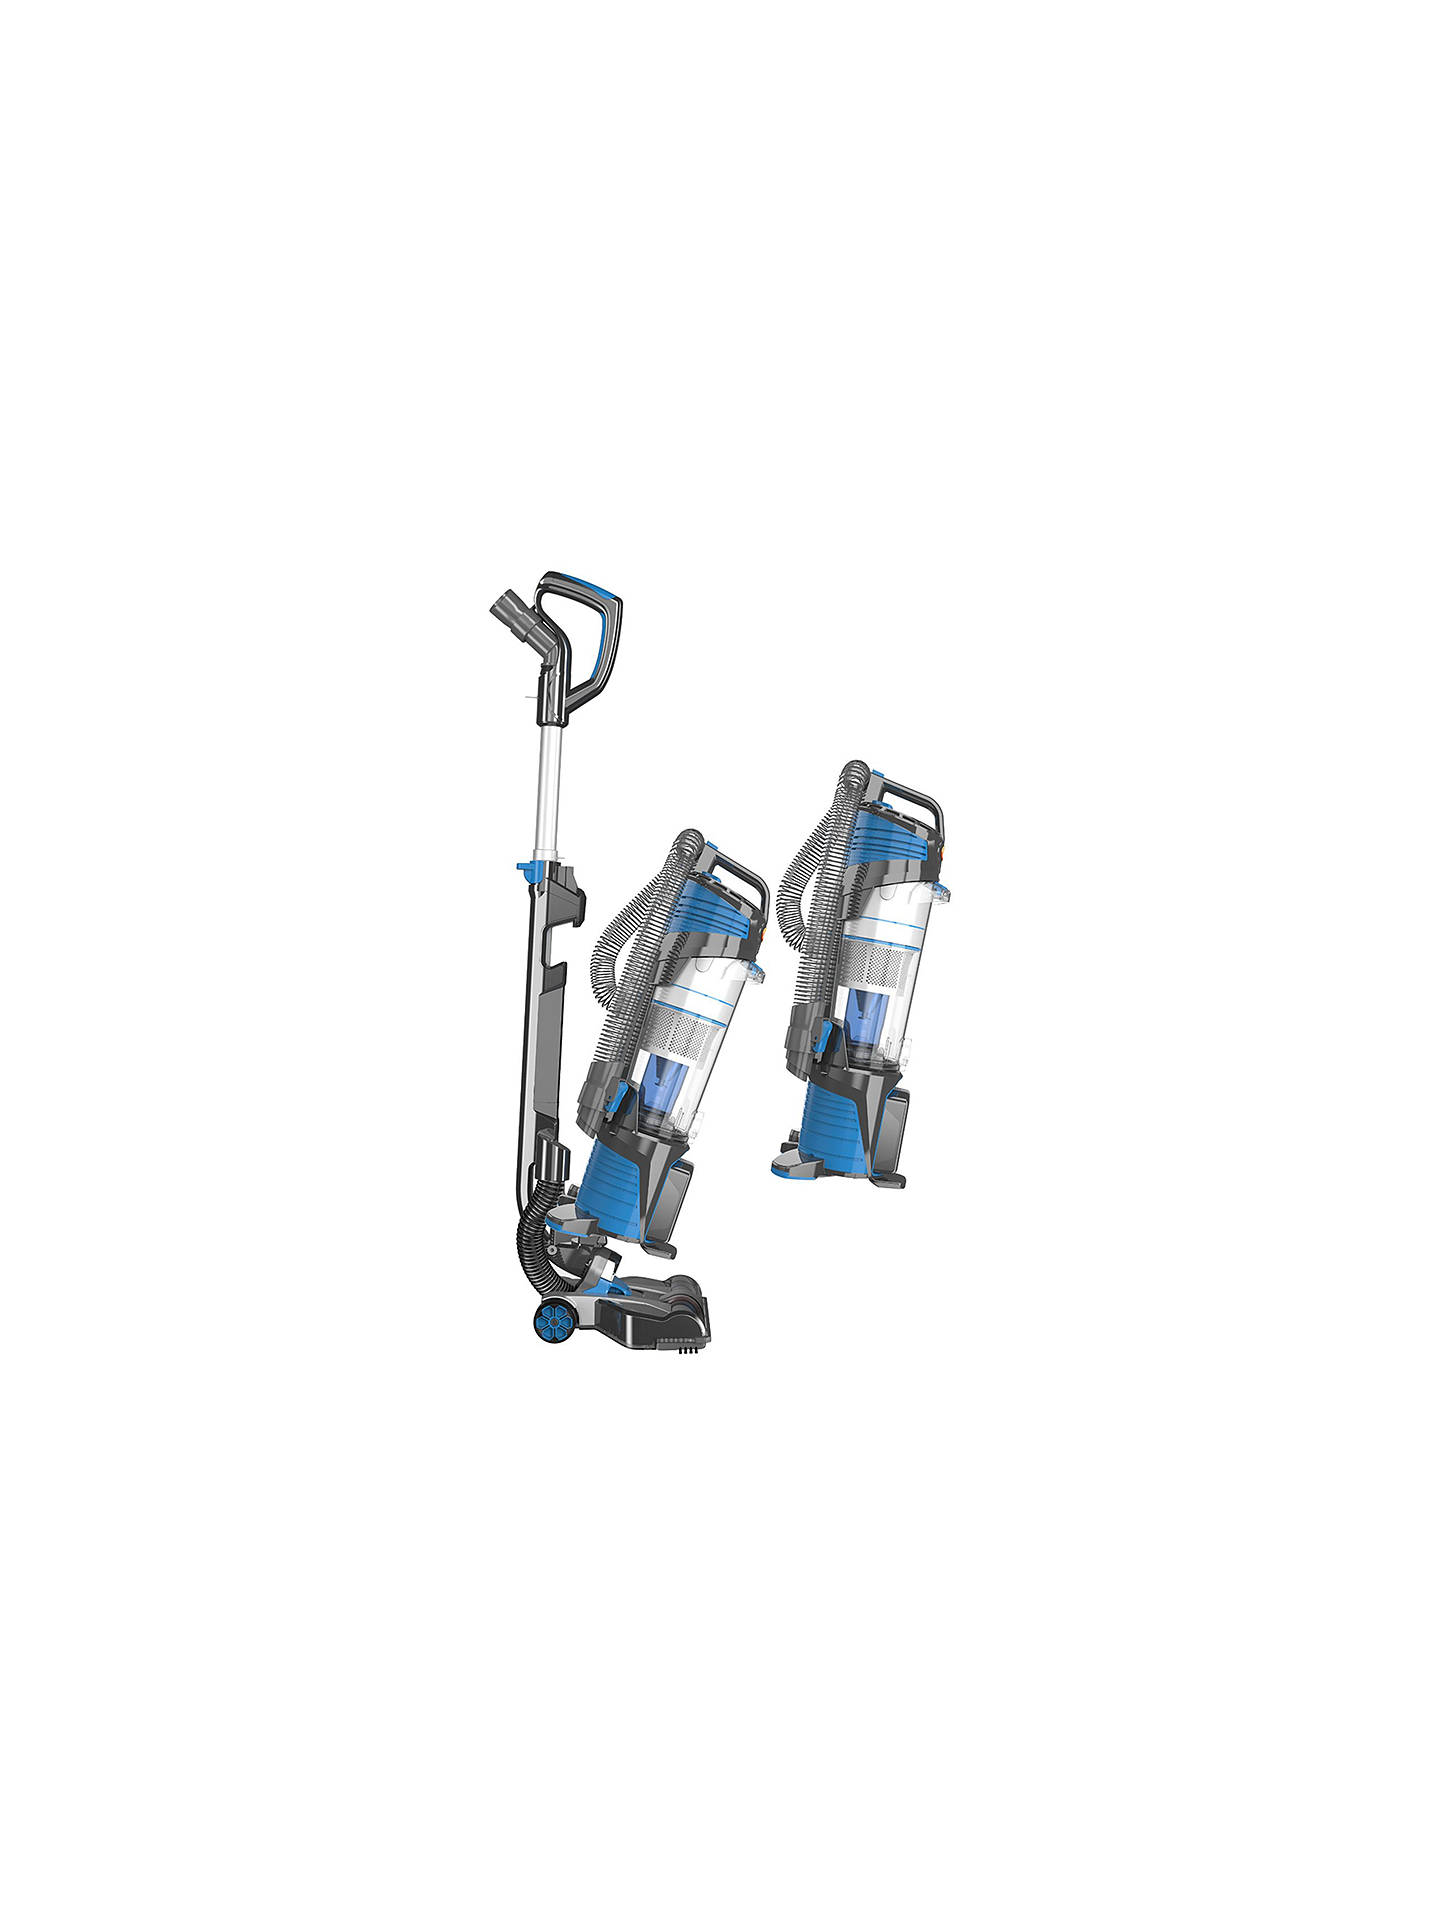 Vax U85-ACLG-B Air Cordless Lift Upright Vacuum Cleaner